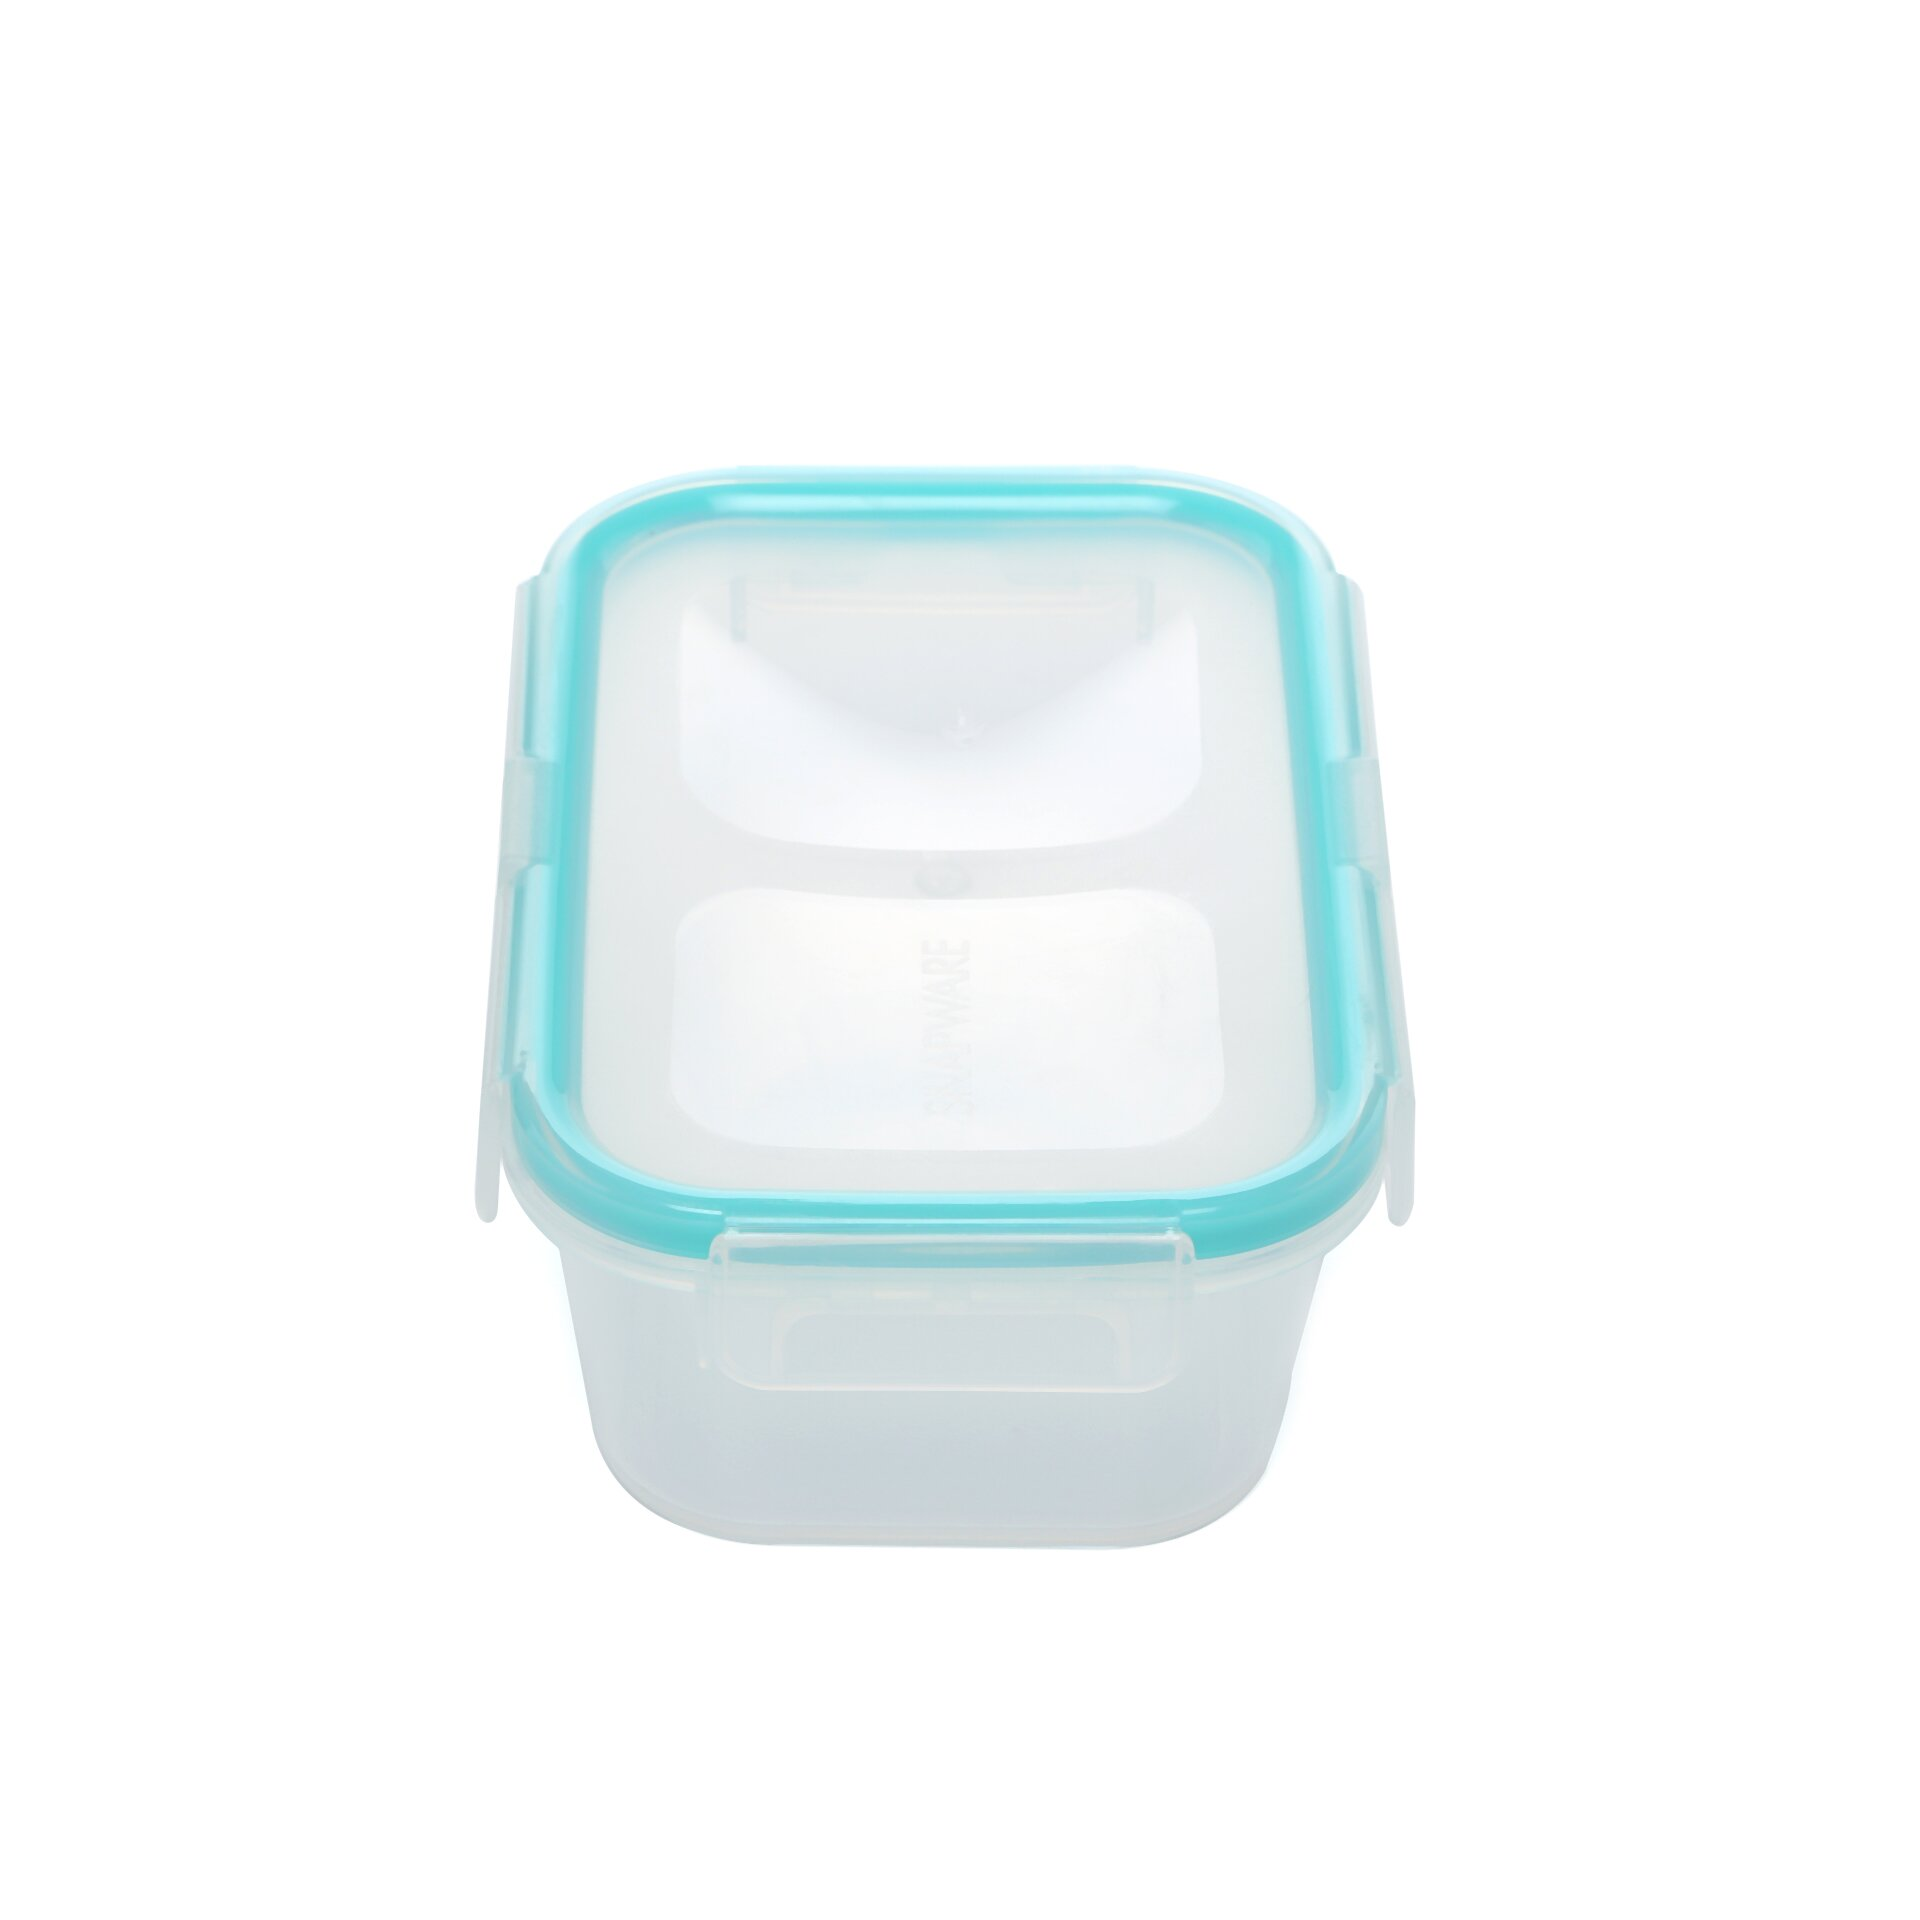 This Snapware Piece storage container set is a low cost version of the higher quality (and more expensive) Lock & Lock storage containers. The Snapware is made of fairly sturdy BPA free polypropylene (i.e., plastic) that has a good durable feel to it.